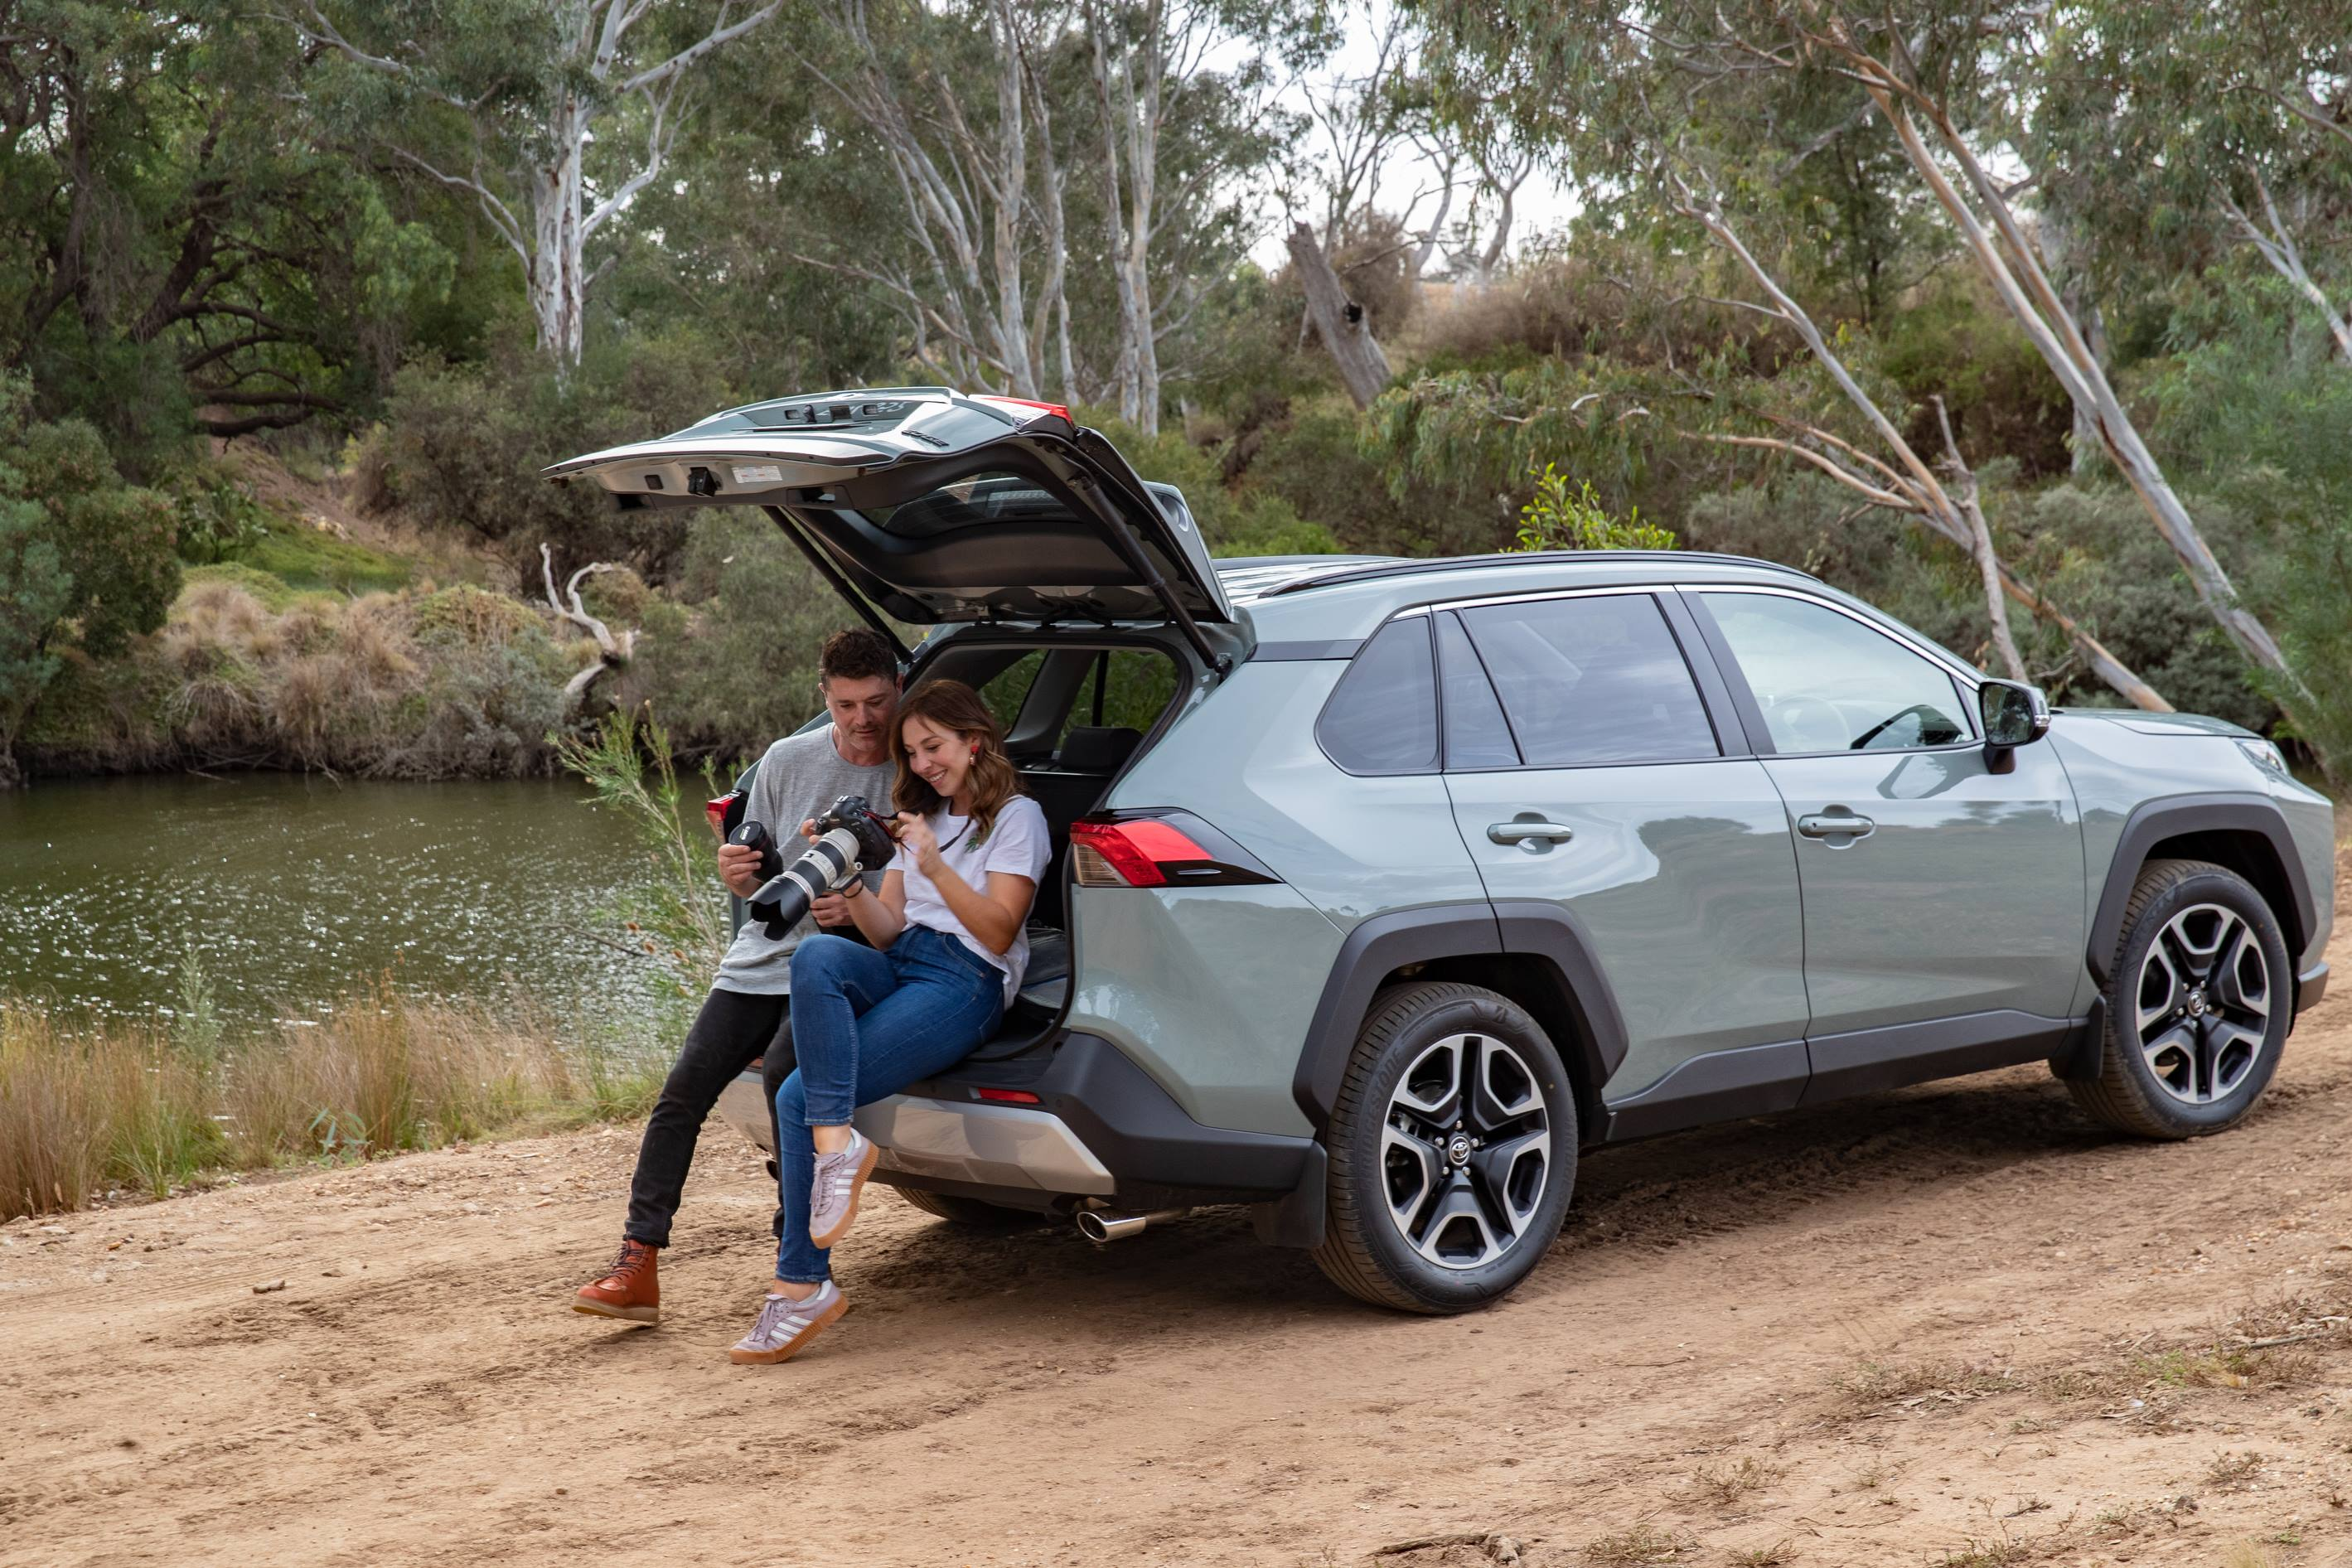 2019 Toyota RAV4 EDGE Video Review: A Medium SUV with a